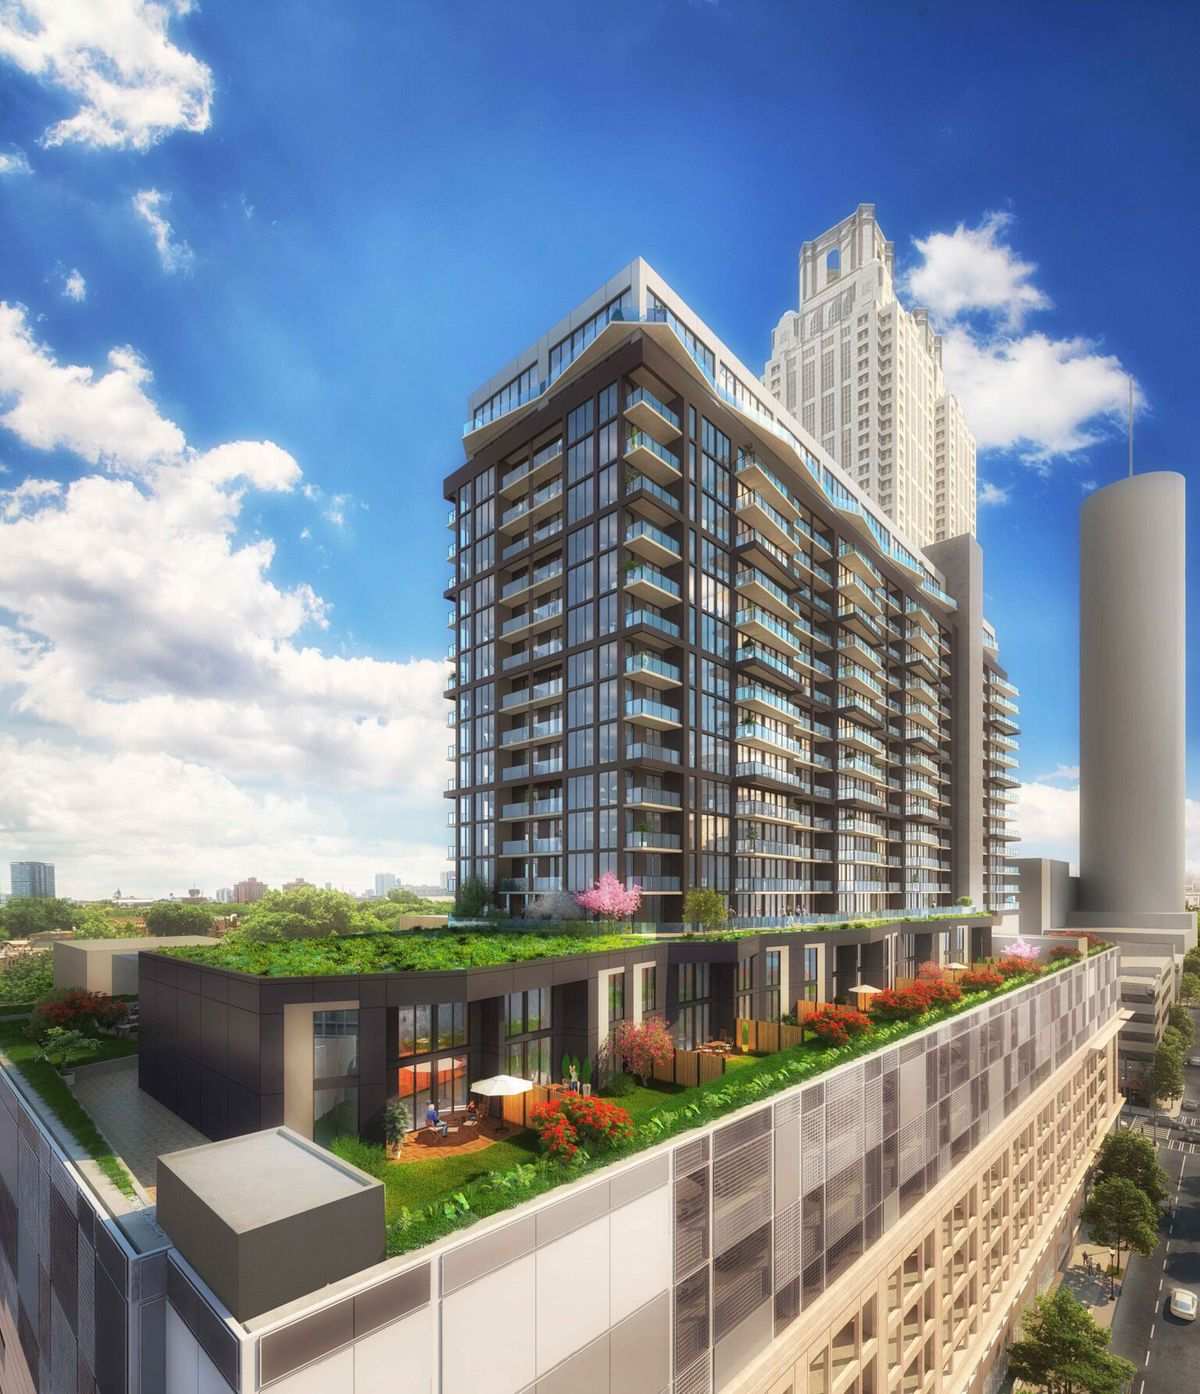 Downtown Atlanta's $125M Parking Deck-topping Tower To